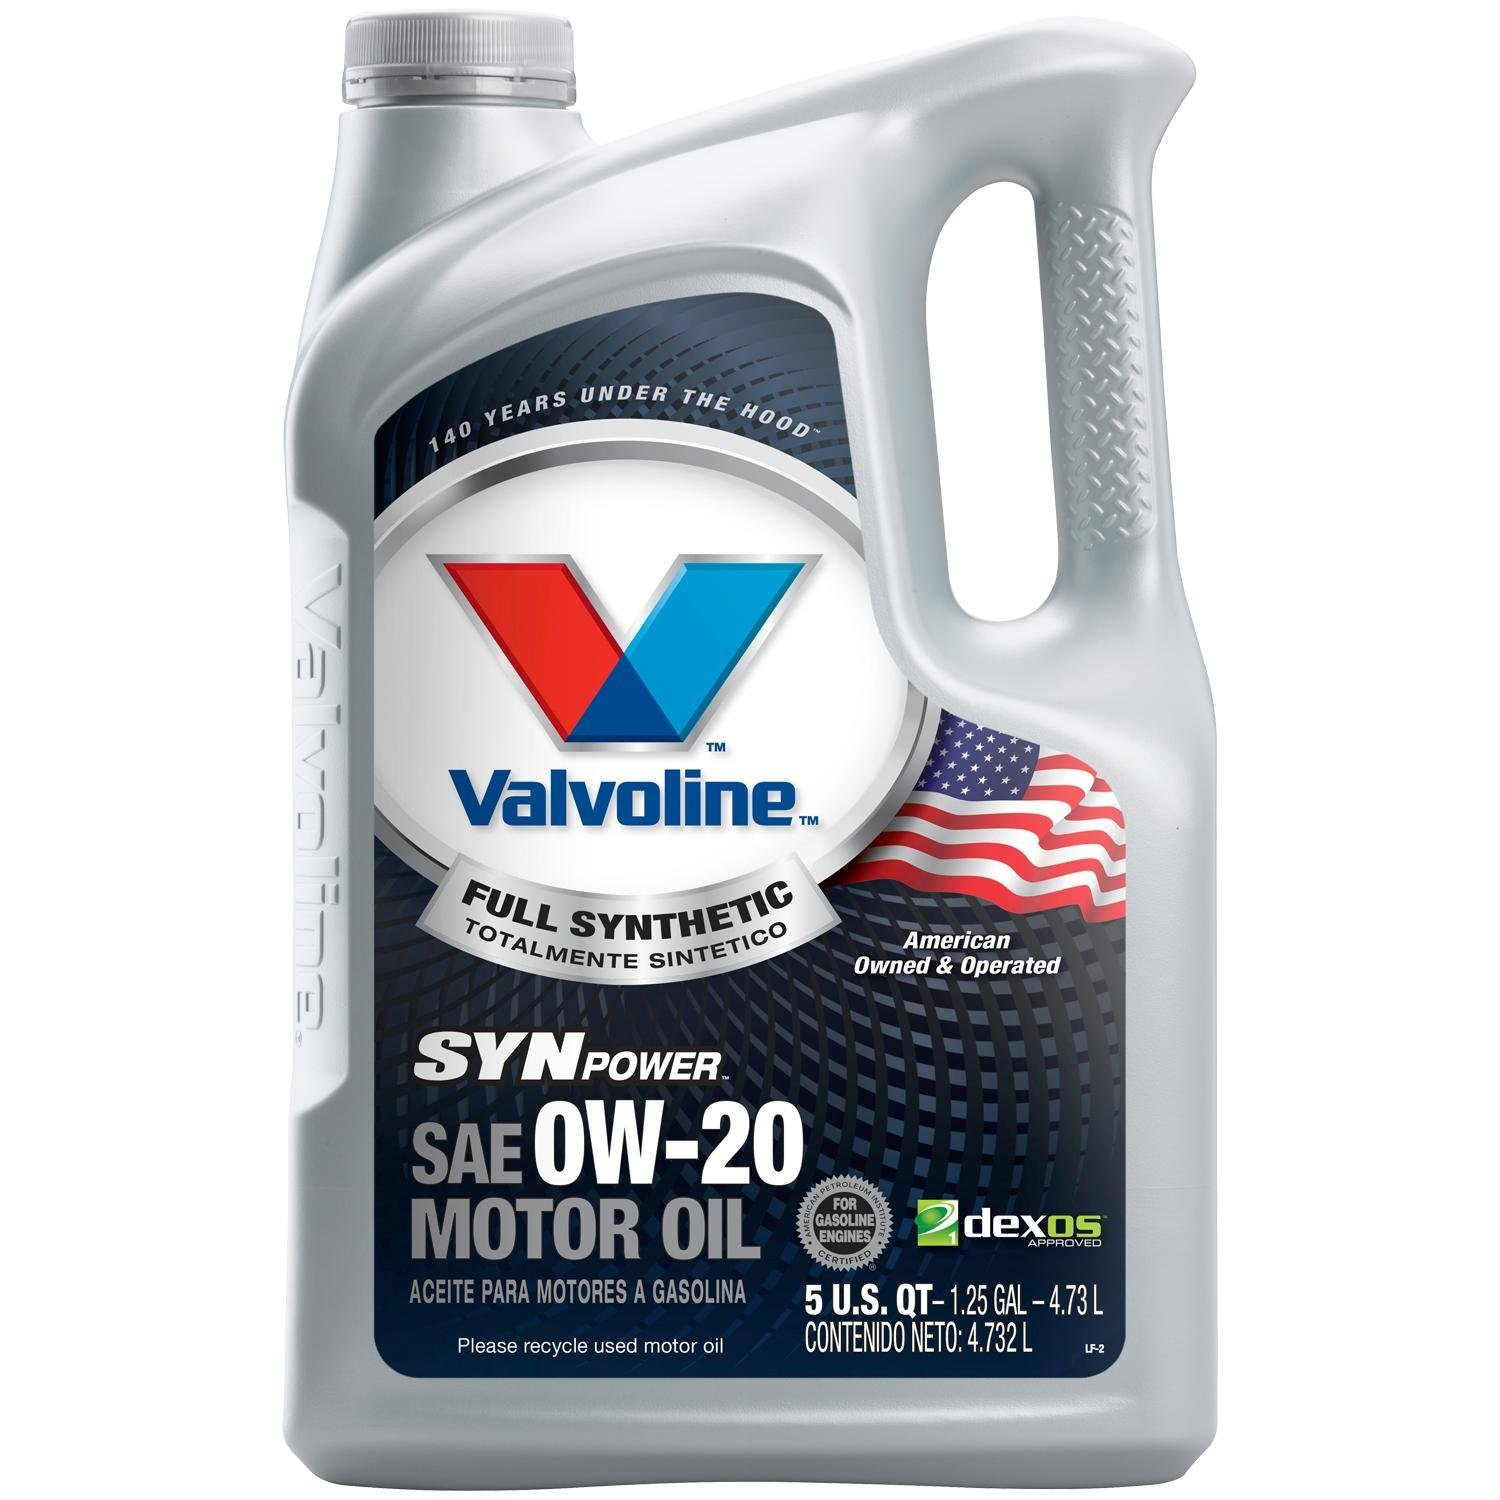 Valvoline SynPower Full Synthetic Motor Oil, SAE 0W-20 - 5qt (813460)